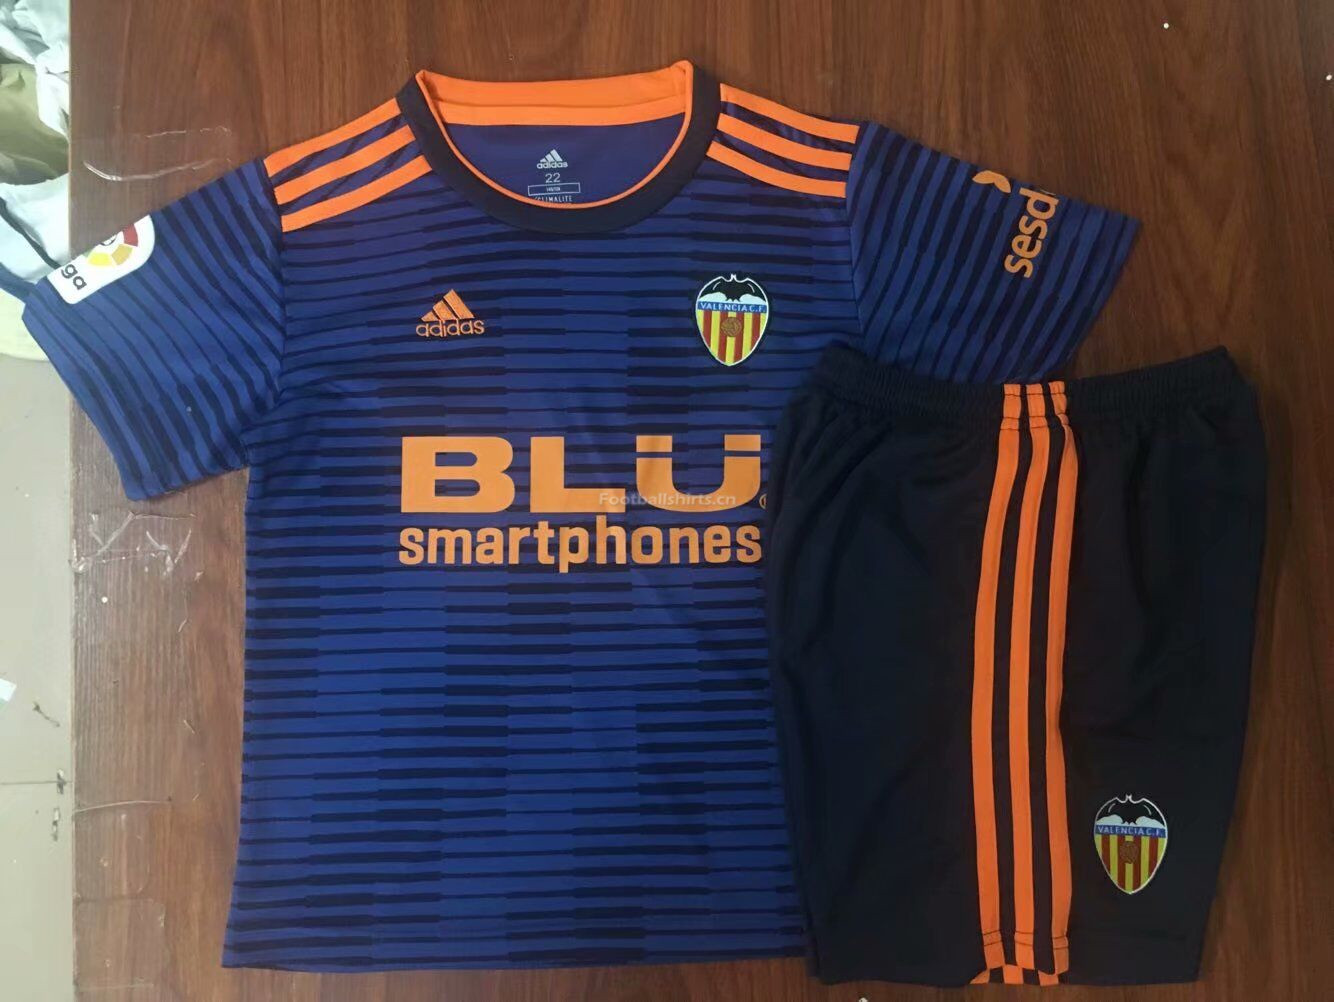 8a3b6173b Kids Valencia CF Away Soccer Jersey Kit Shirt + Shorts 2018 19 ...